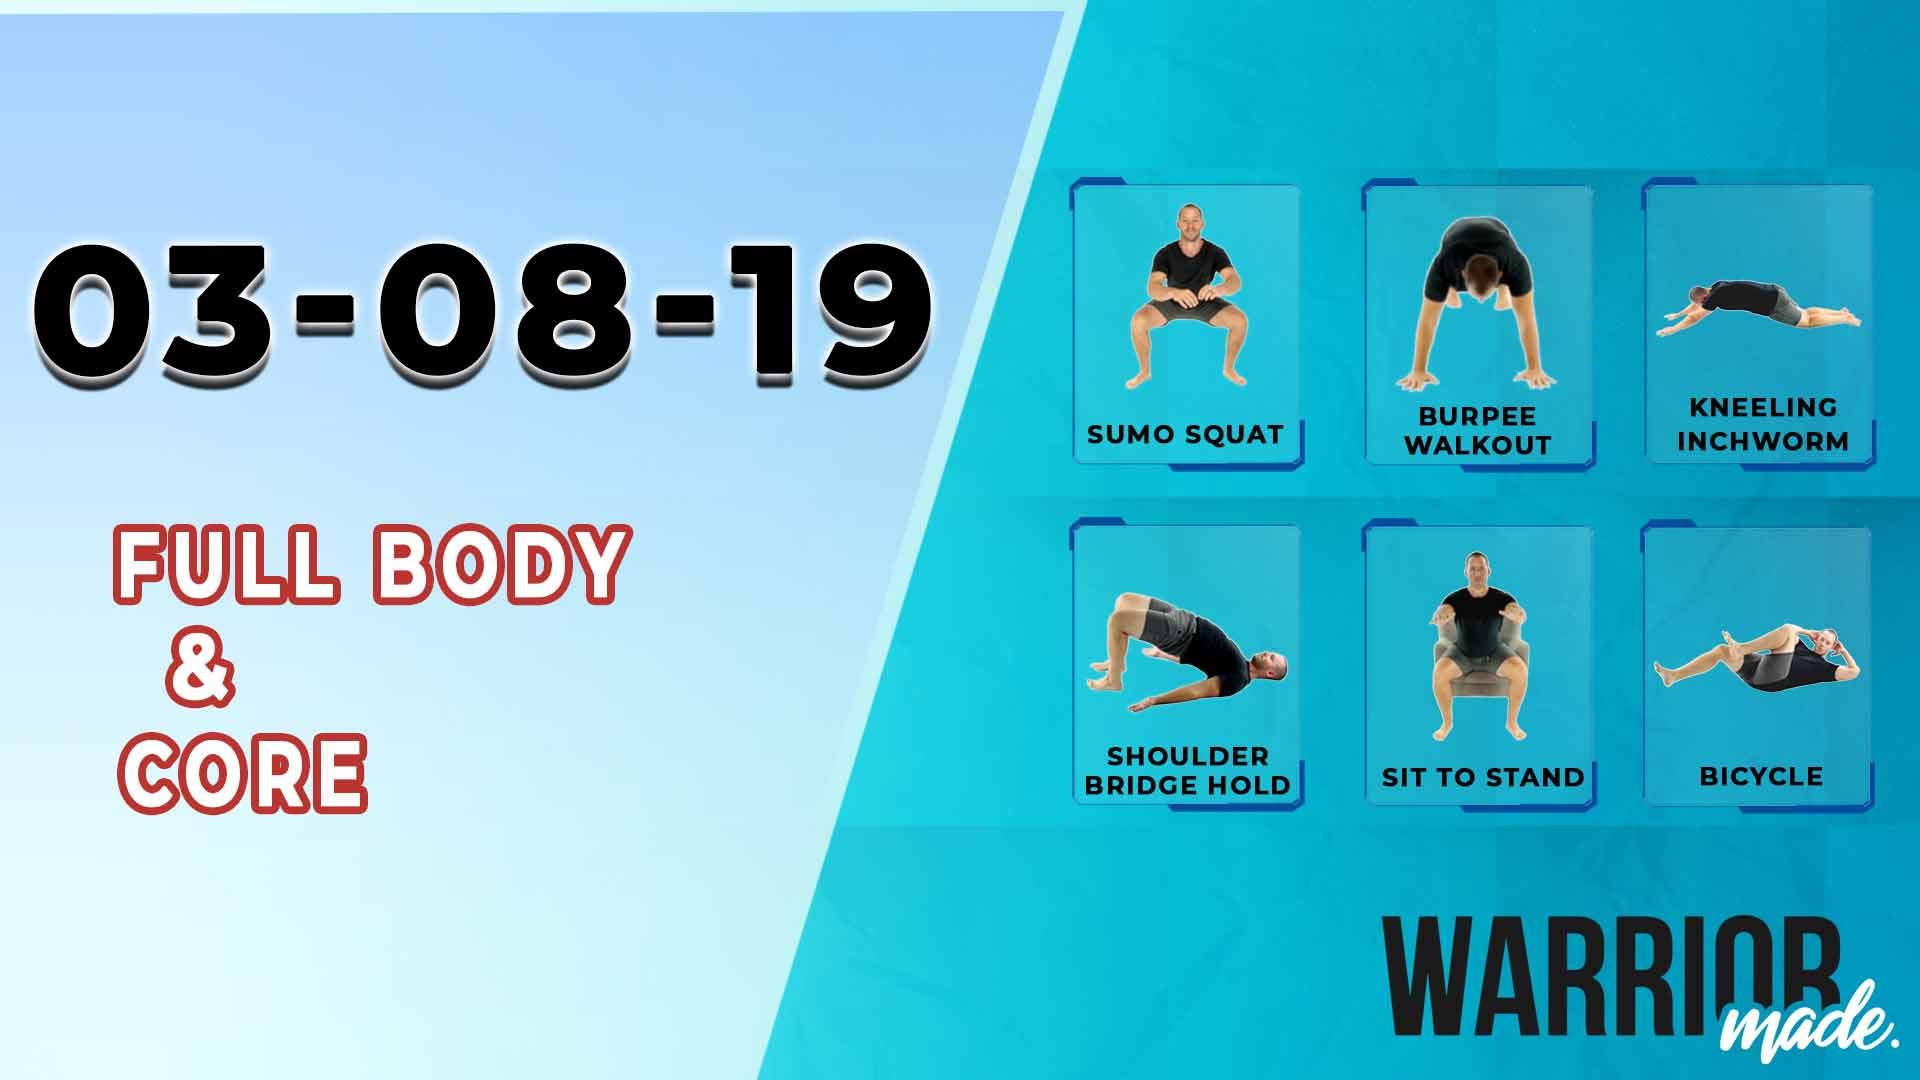 workouts-03-08-19